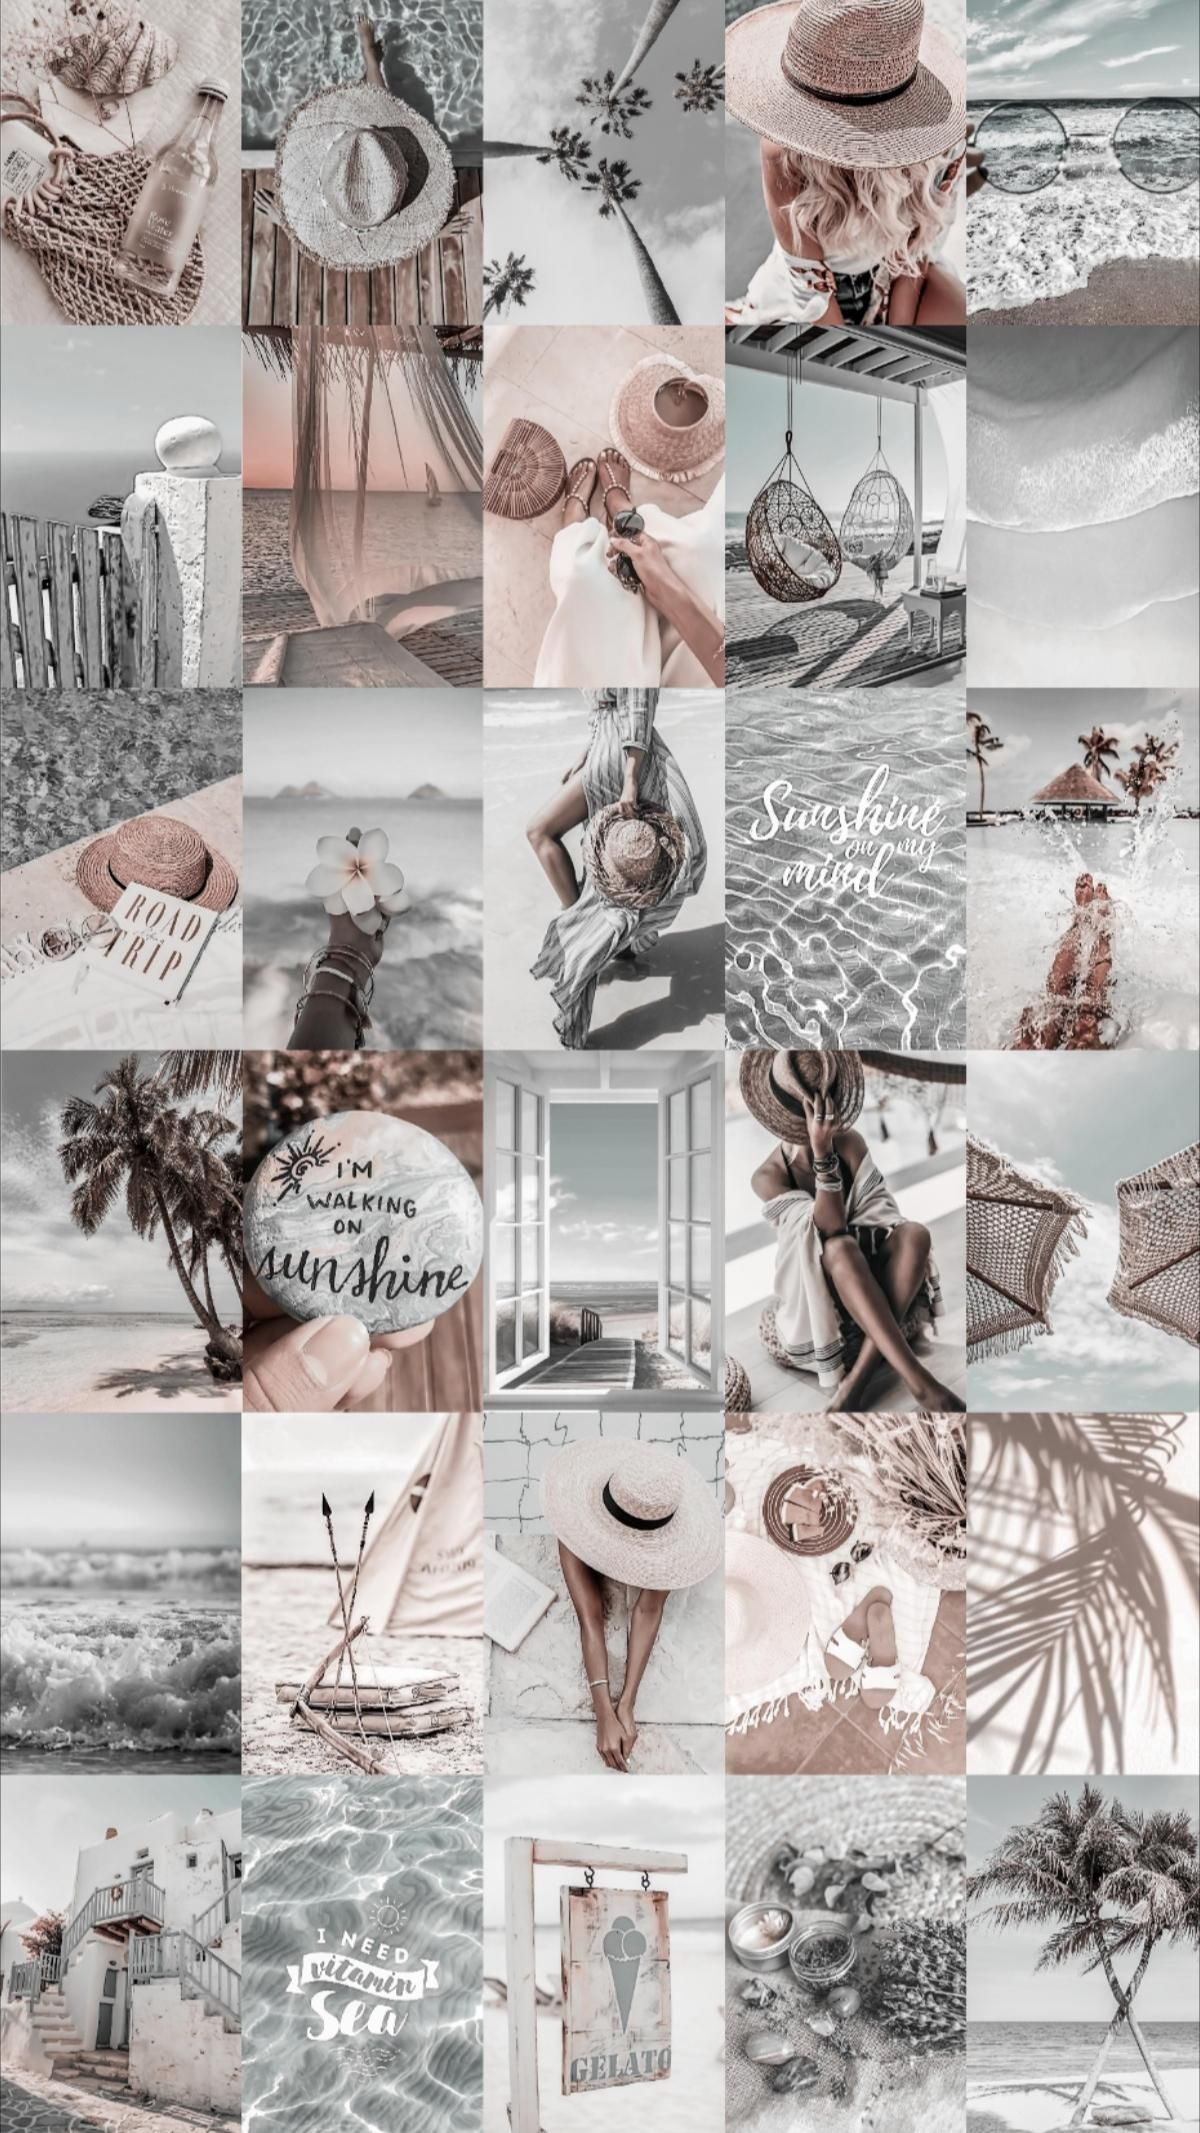 Spice up your room with this beach aesthetic photo wall collage kit!